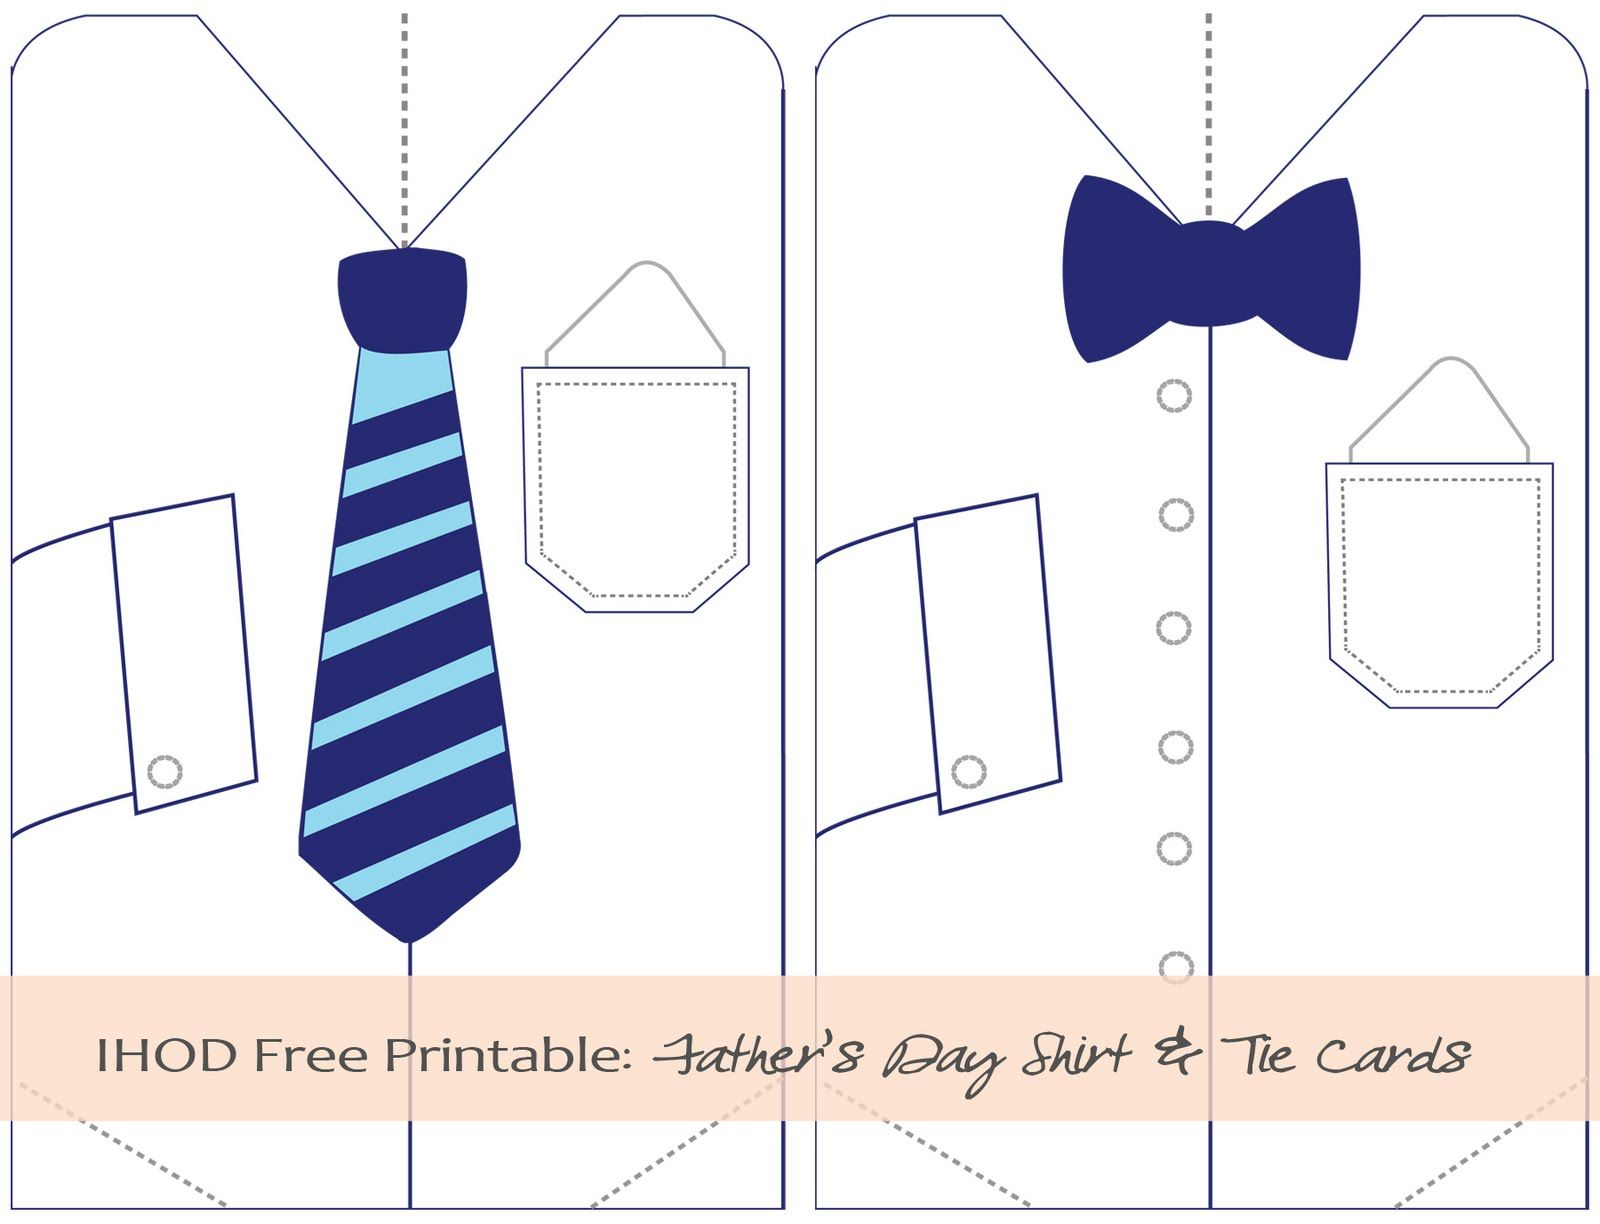 Free Printable Cards Invite Free Printable Cards Printable Cards Fathers Day